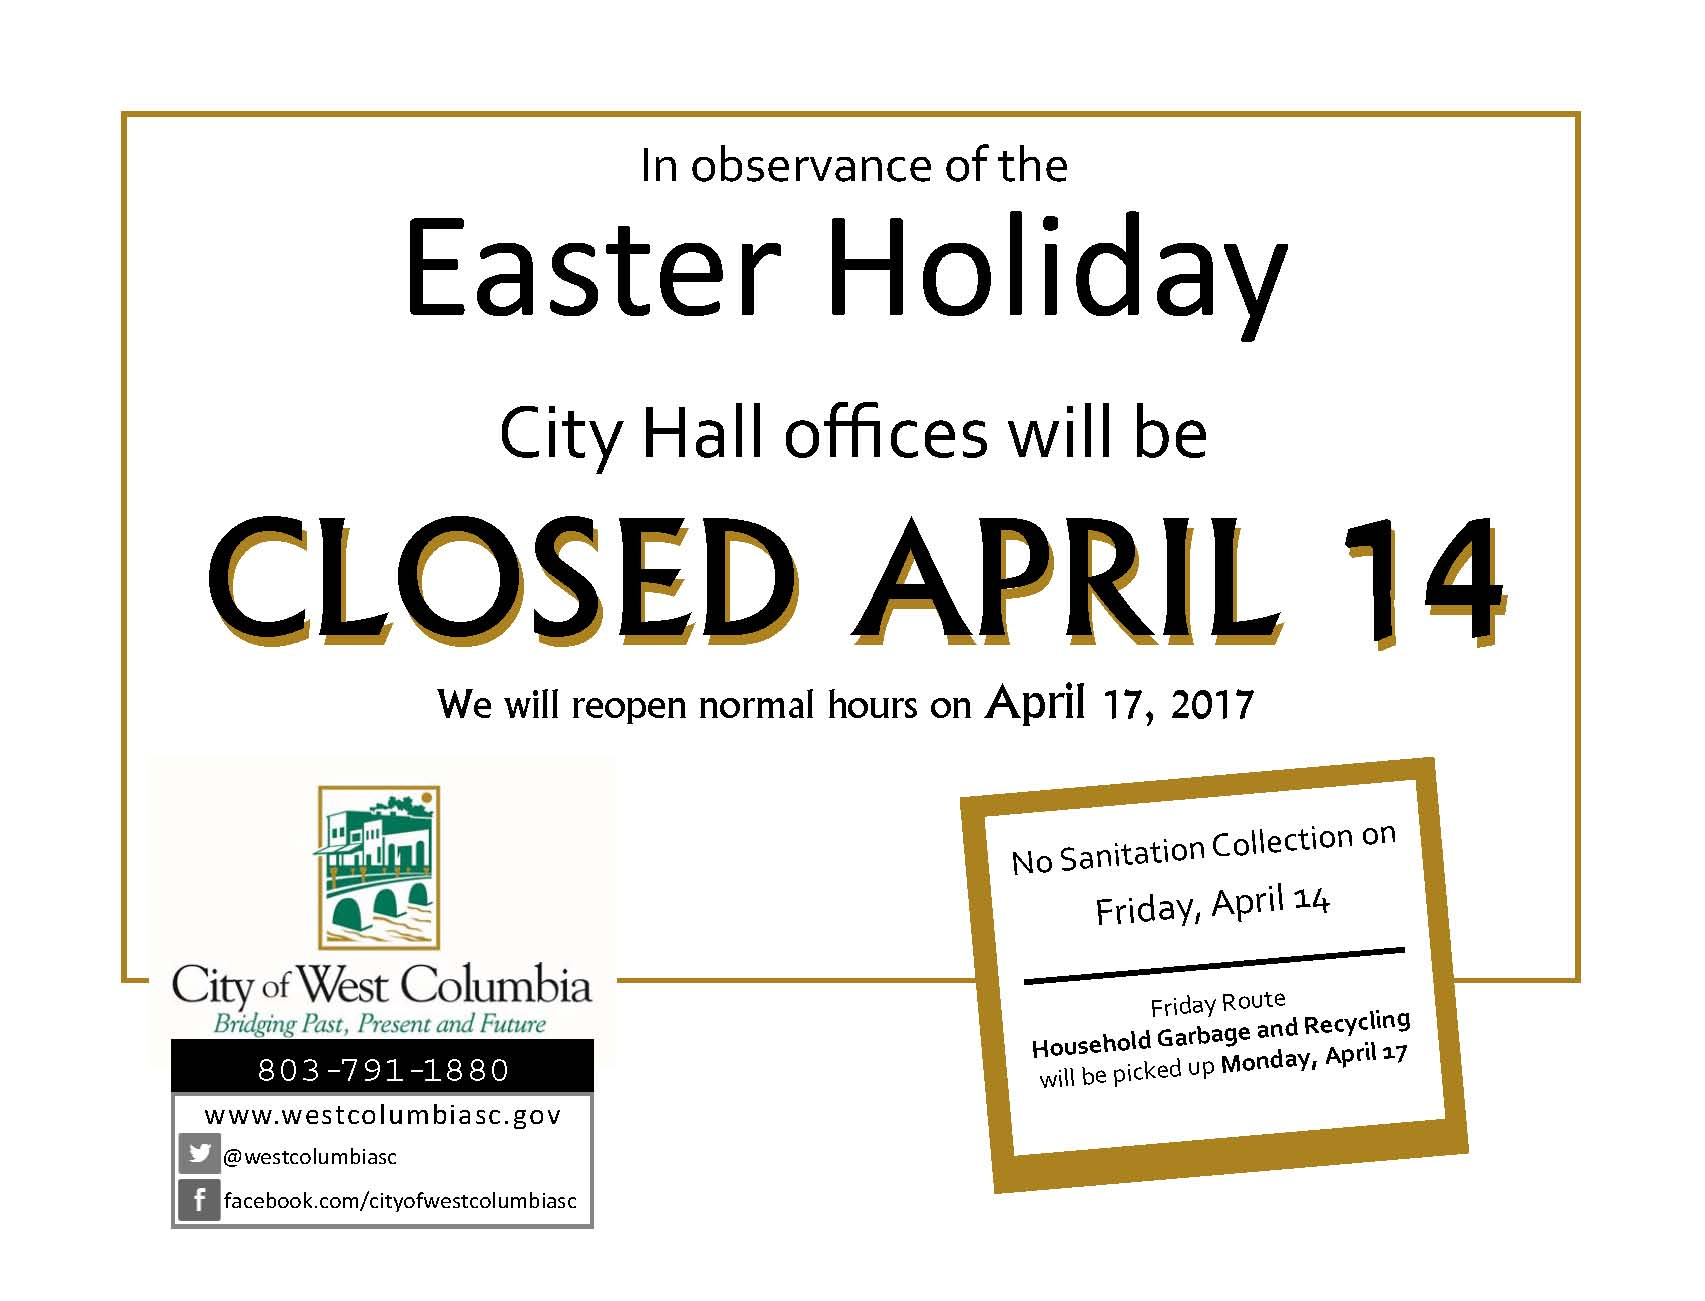 west columbia city hall and sanitation information for the